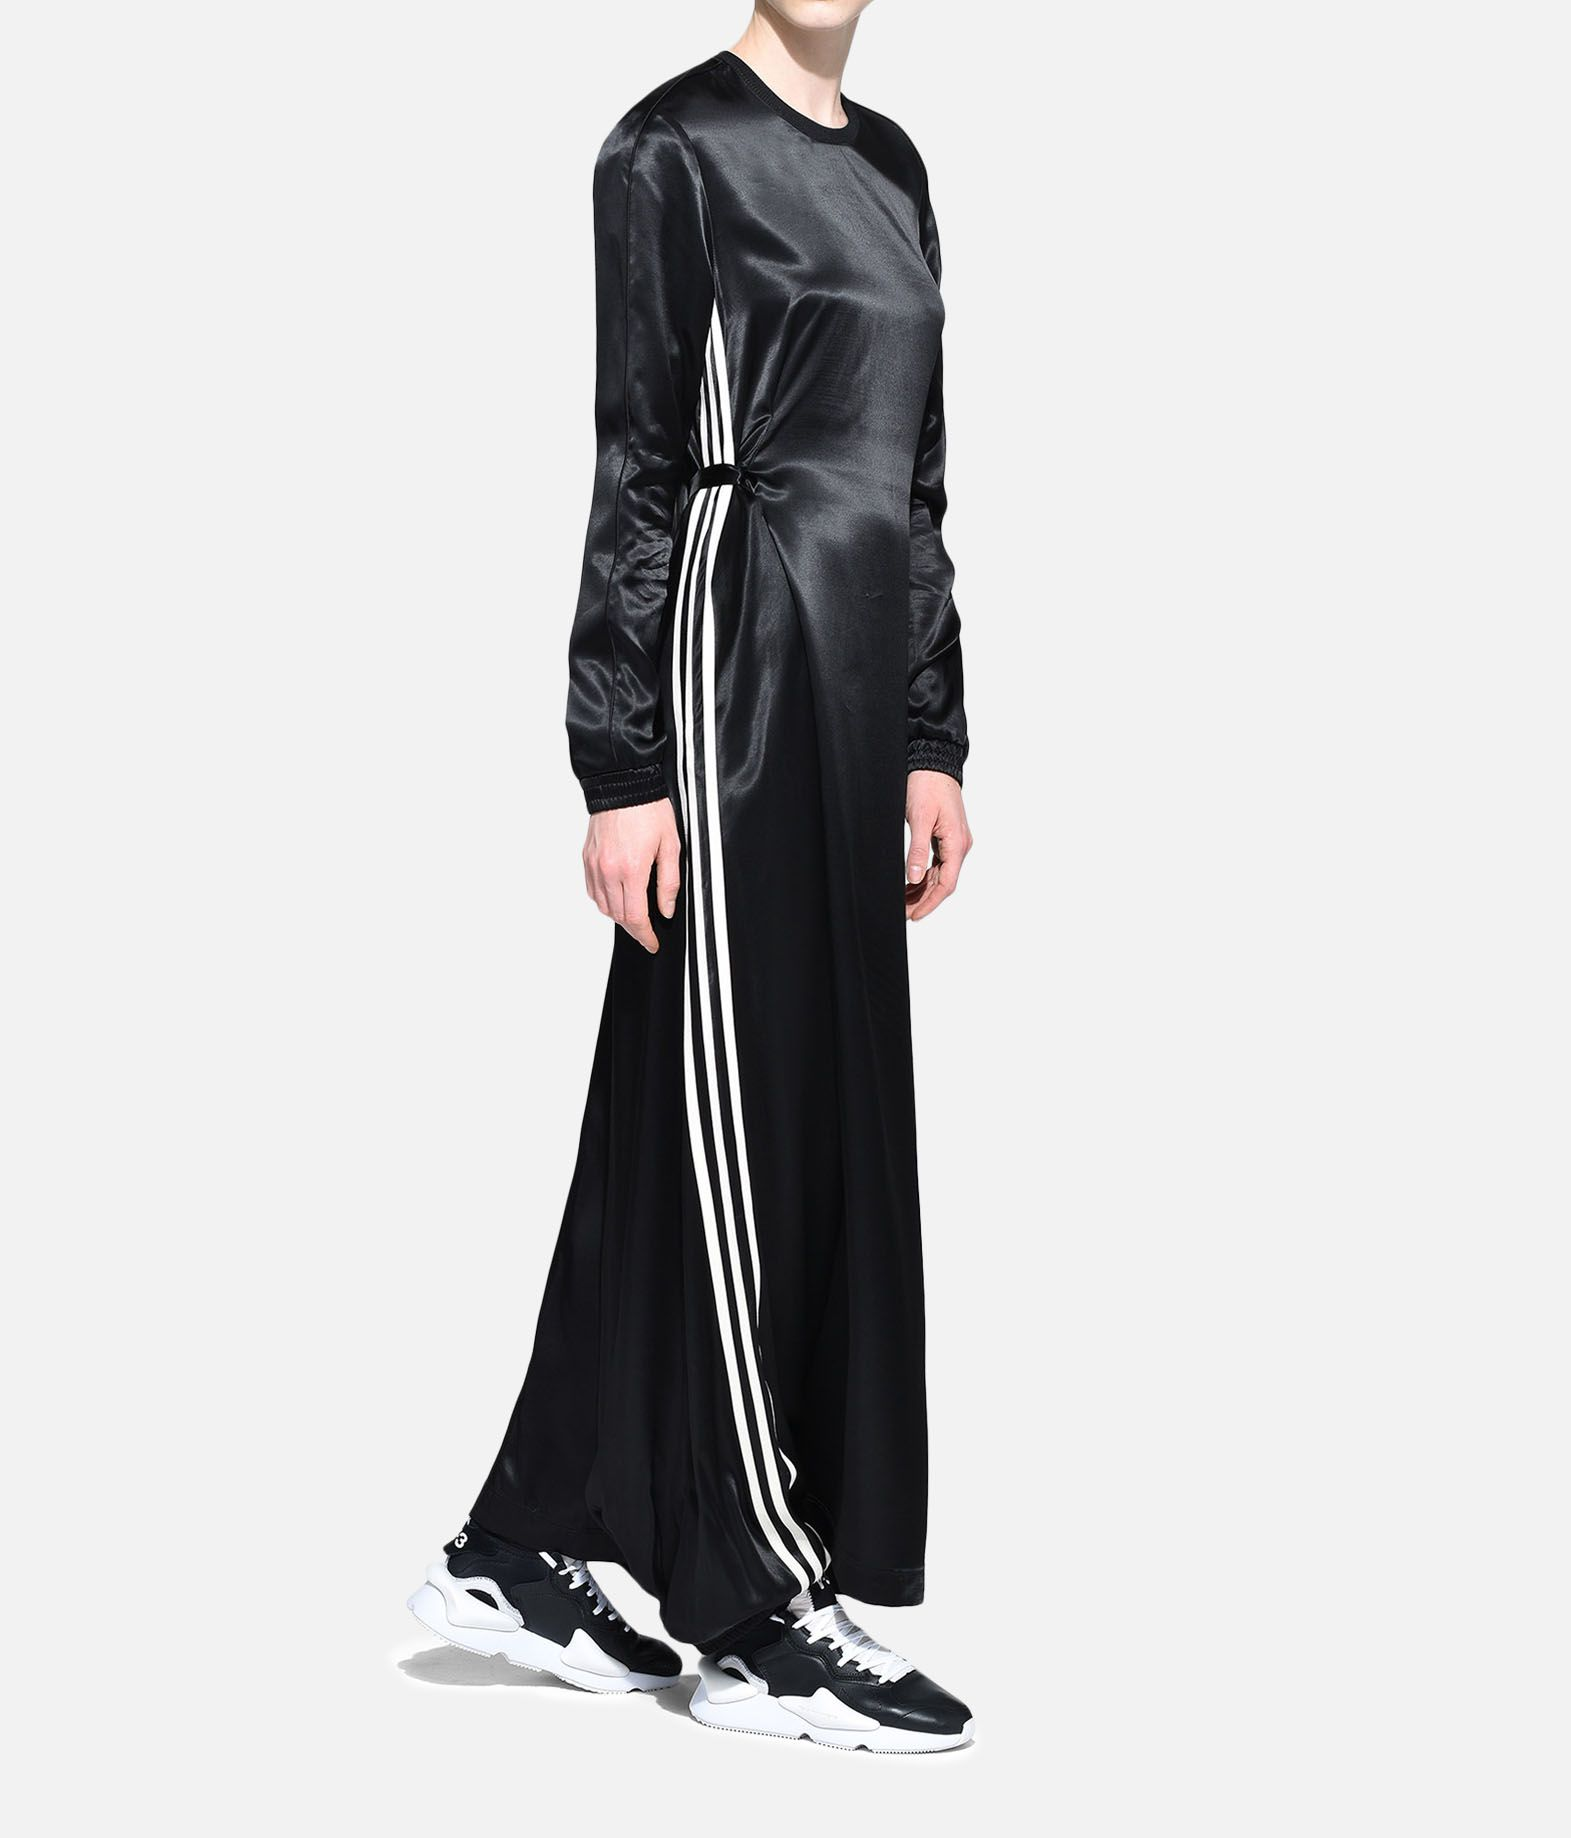 Y-3 Y-3 3-Stripes Lux Track Dress Vestito lungo Donna a